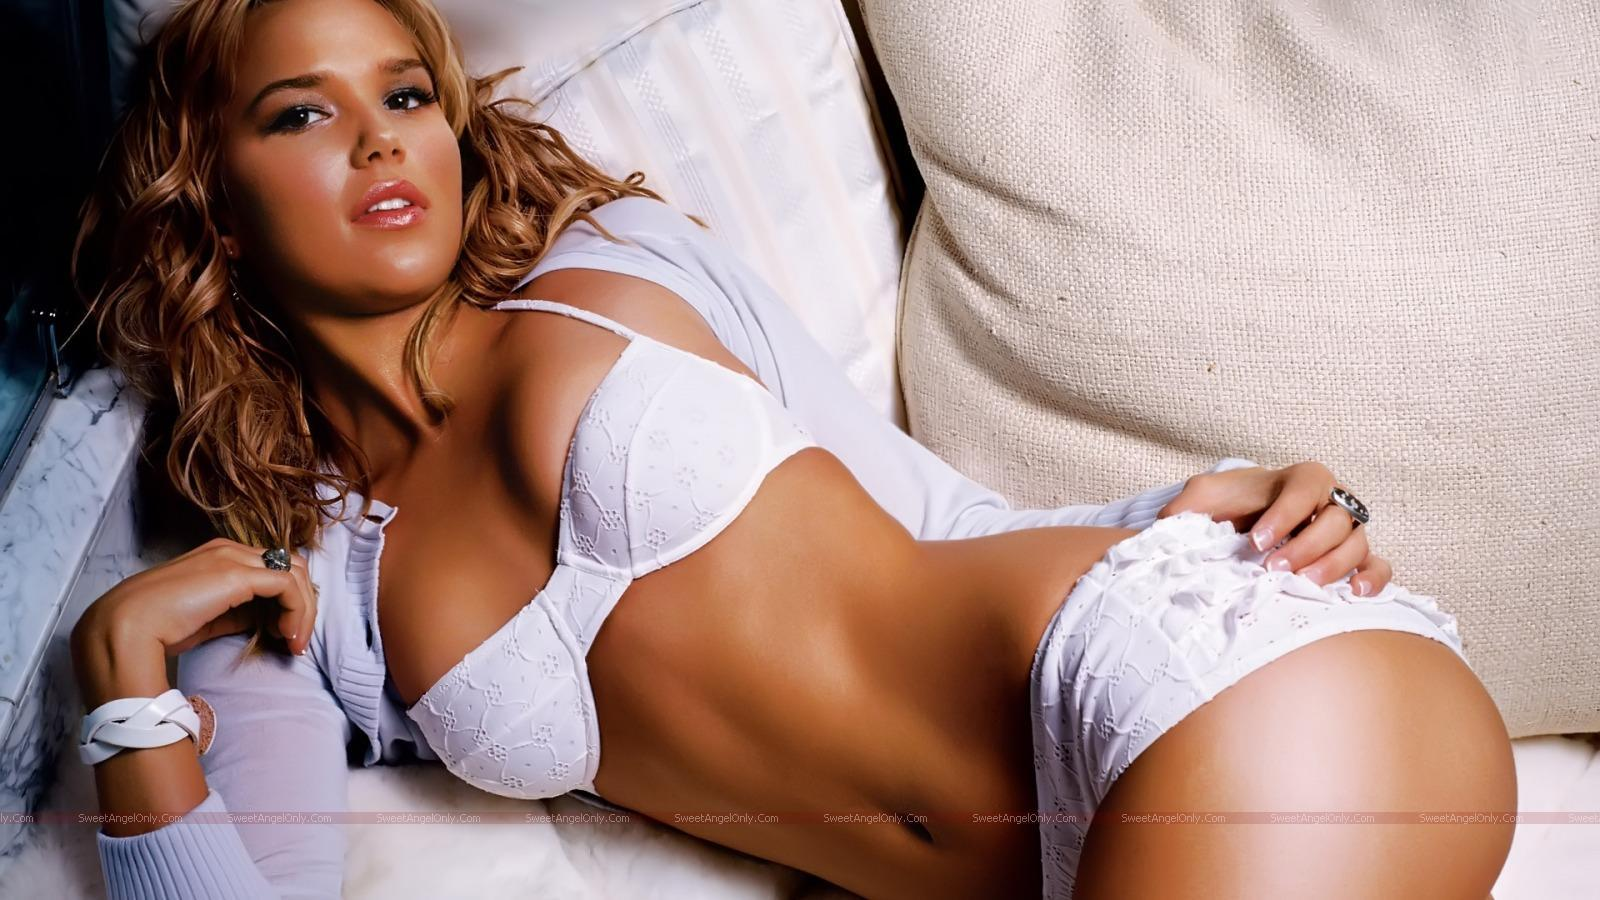 http://4.bp.blogspot.com/_jJPqWg6V3Y8/TTltV8w5MxI/AAAAAAAADnk/VqniOczsflc/s1600/hollywood_hot_actress_wallpapers_18_01.jpg